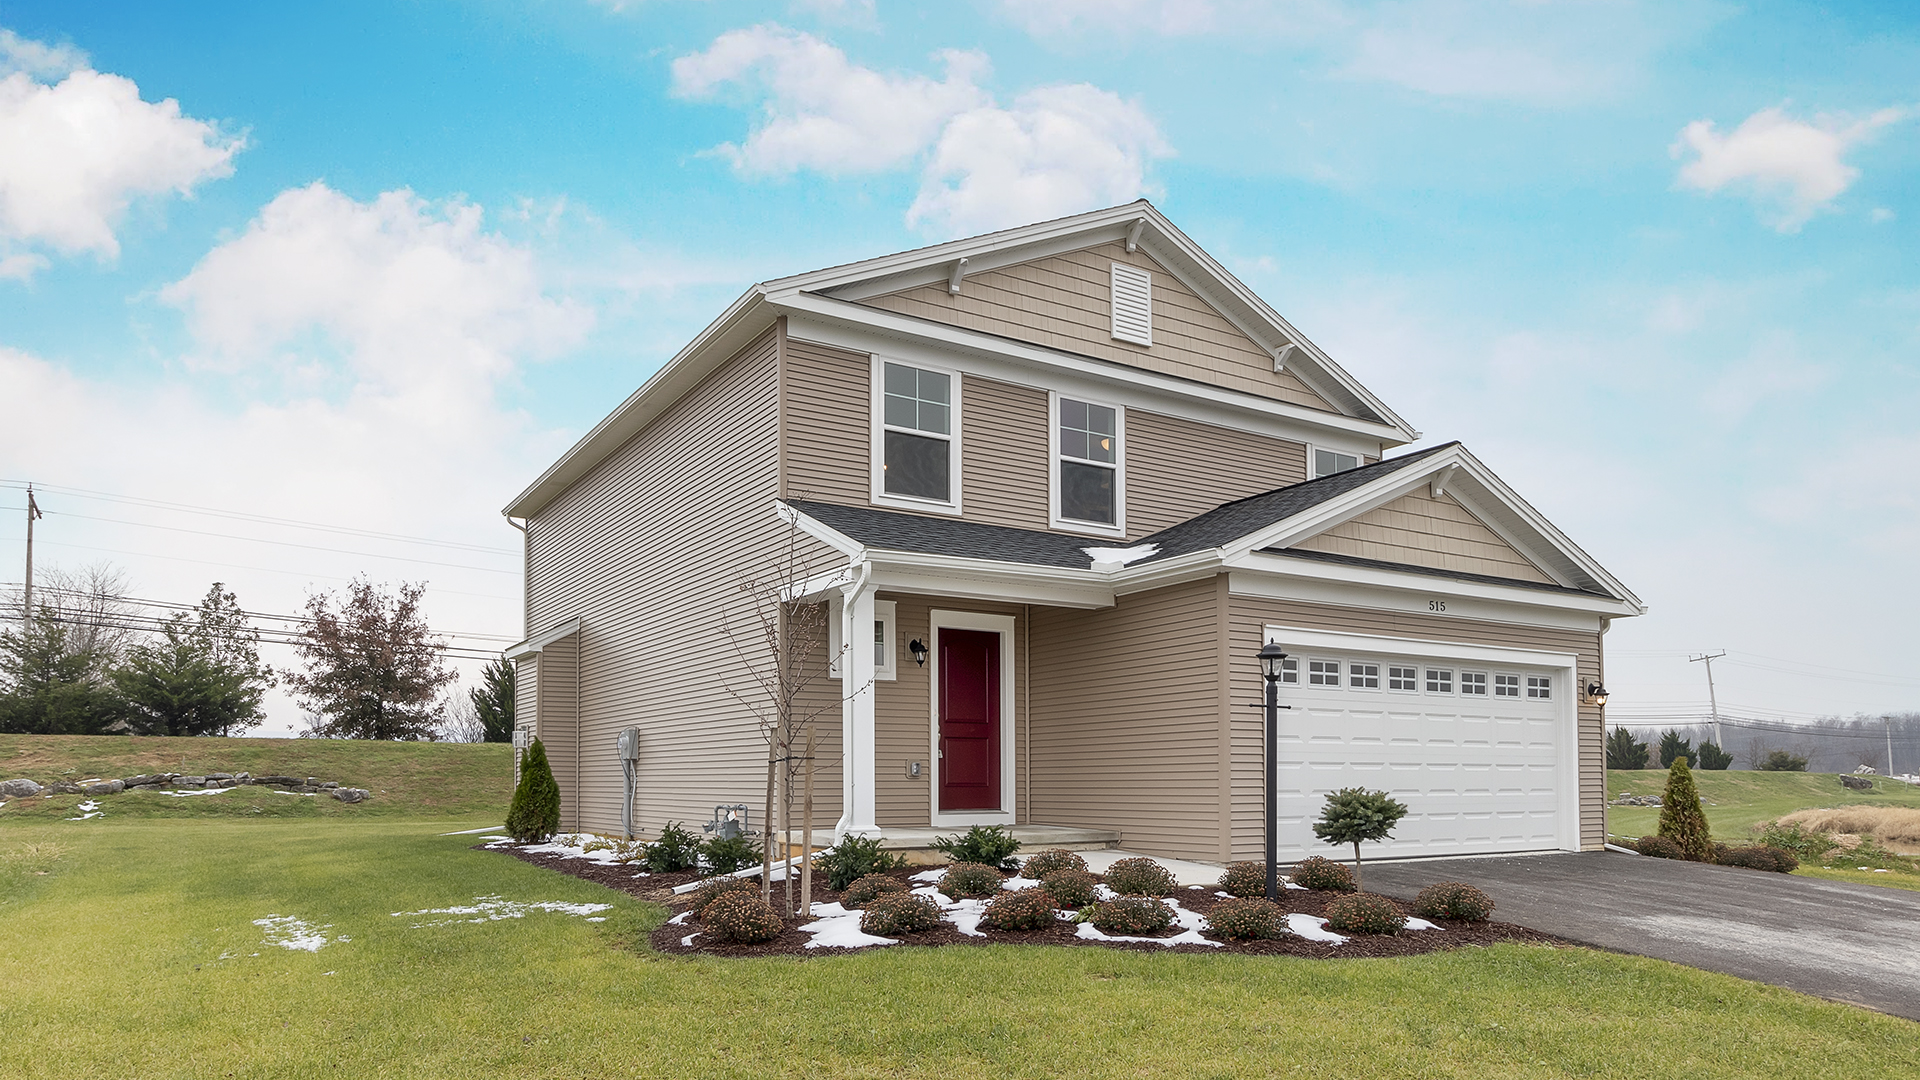 New Blair County Homes Available from S&A Homes